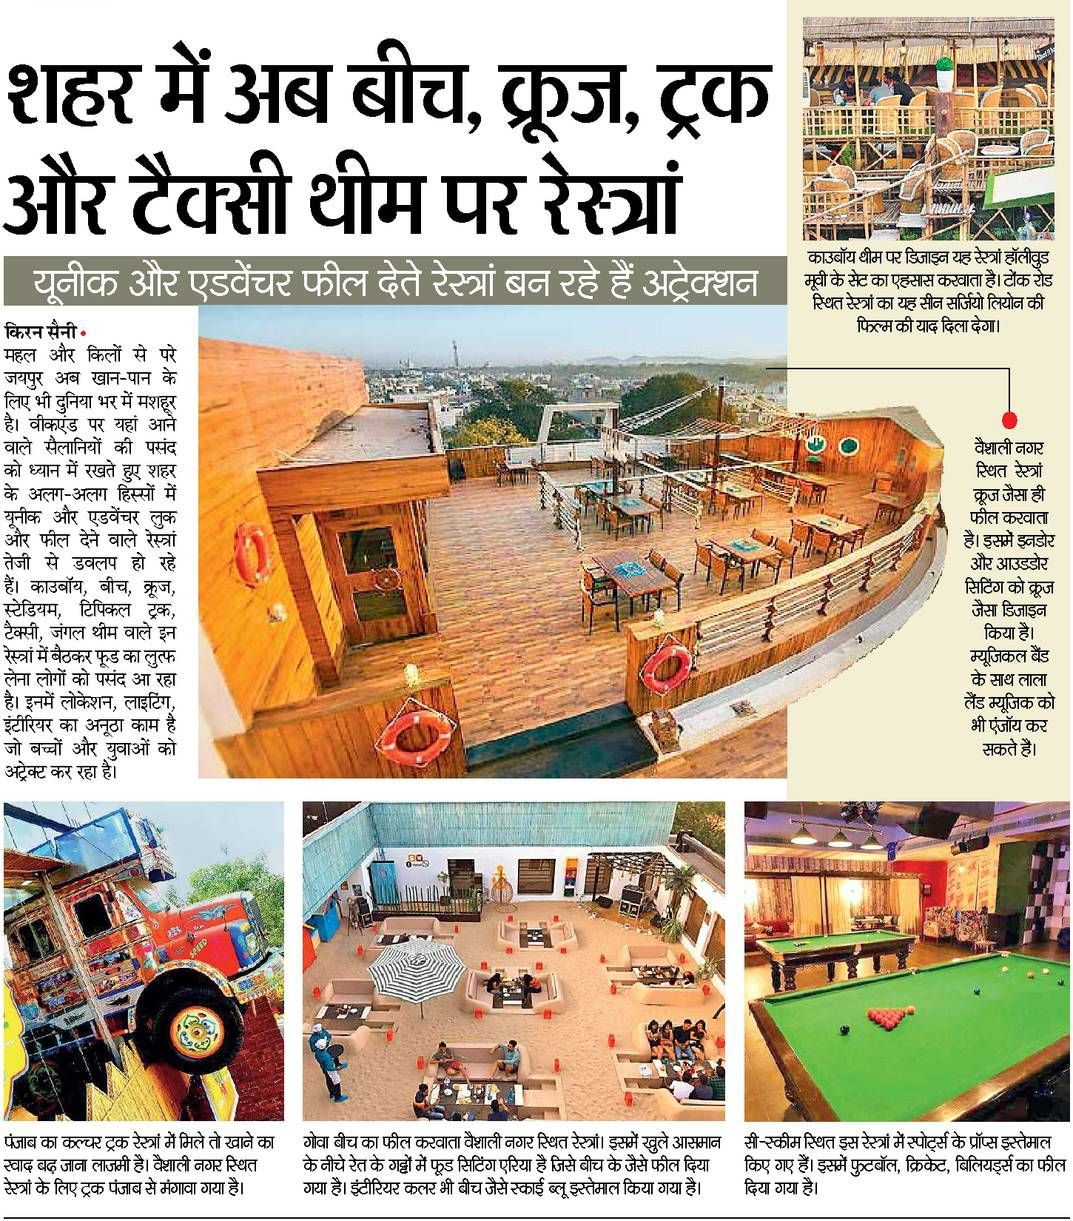 Address The Royal Ship Restaurant Plot No 8 Near Queens Road Turn Khatipura Road Vaishali Nagar Jaipur Wireless 91 7232000881 Flying Ship Rooftop City